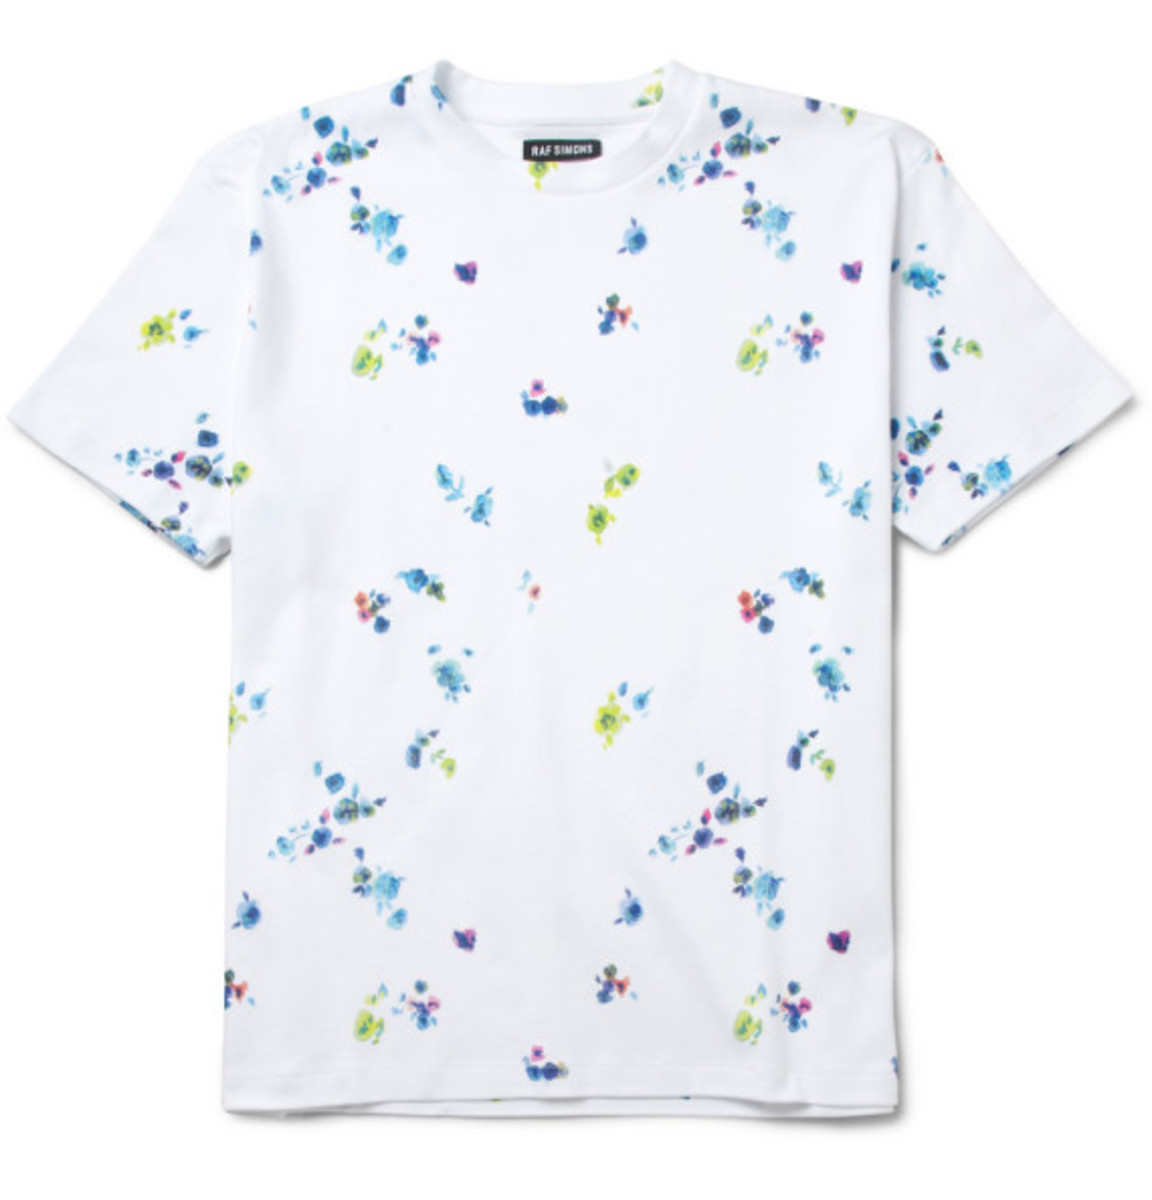 raf-simons-mr-porter-exclusive-flower-print-cotton-t-shirt-01